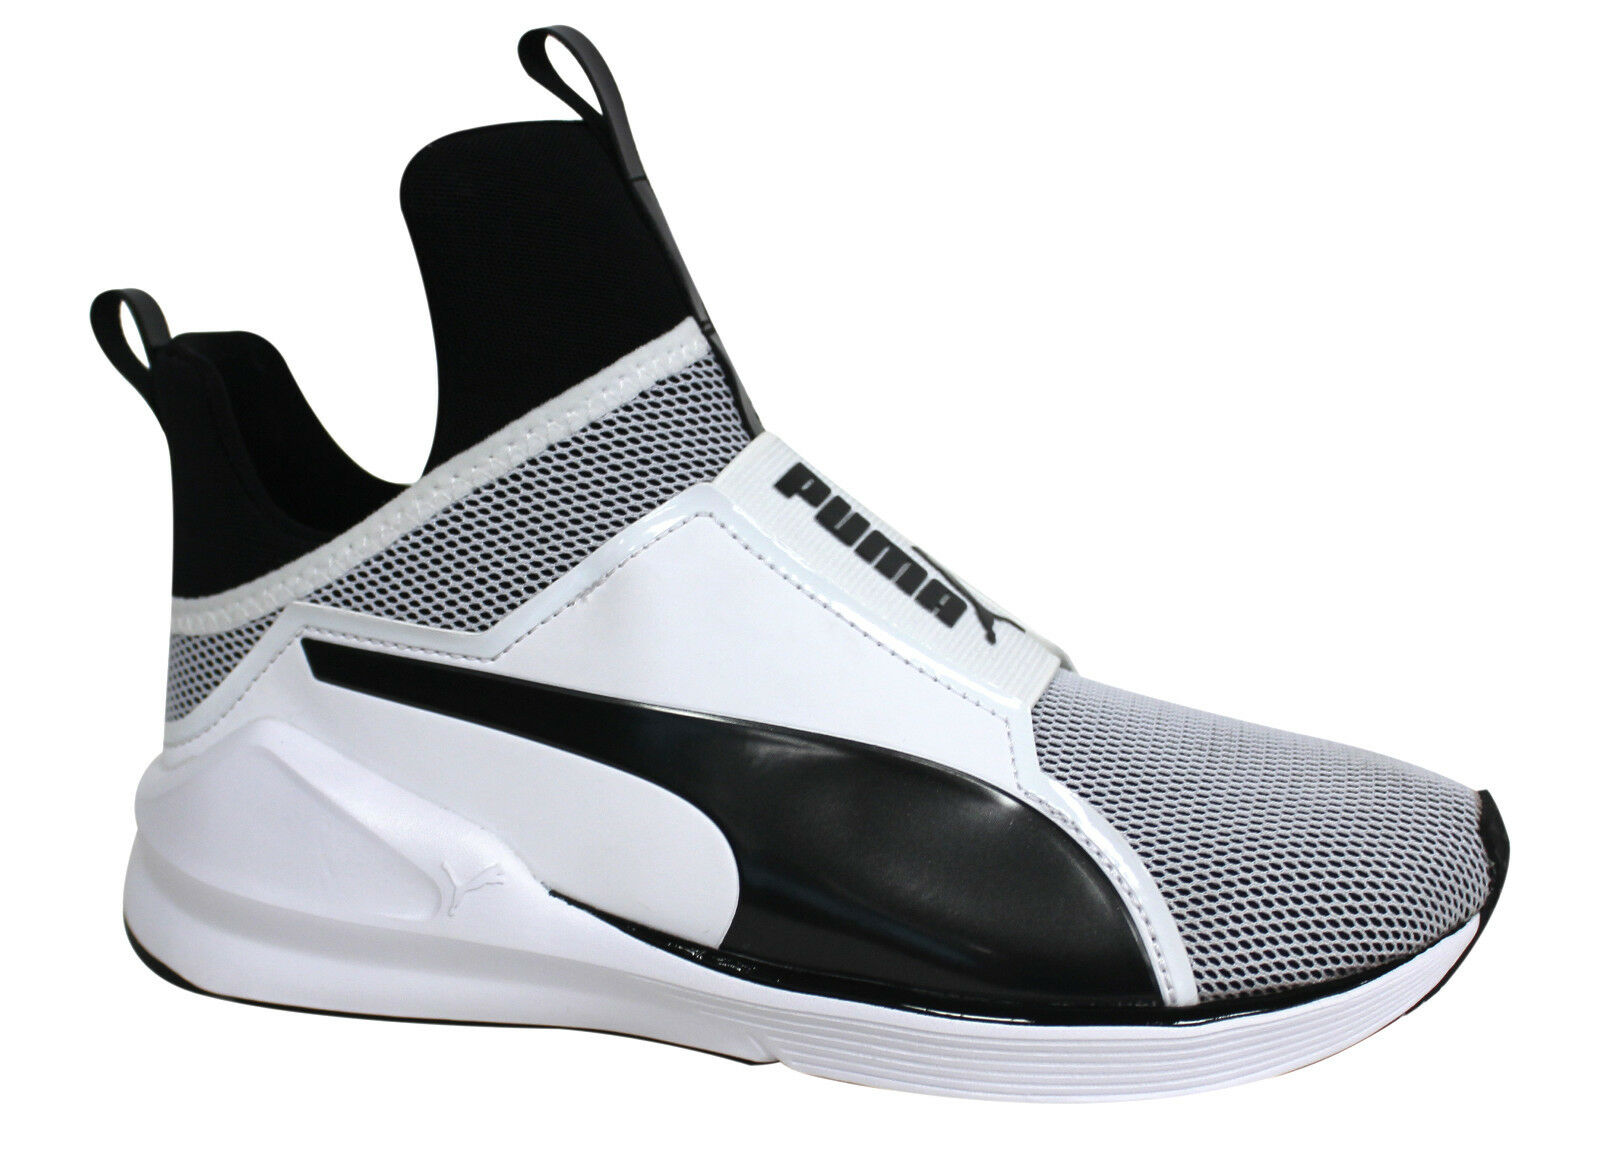 Puma Dance Fierce Core Donna Slip On Mesh Dance Puma Trainers 188977 02 P0 c9372b